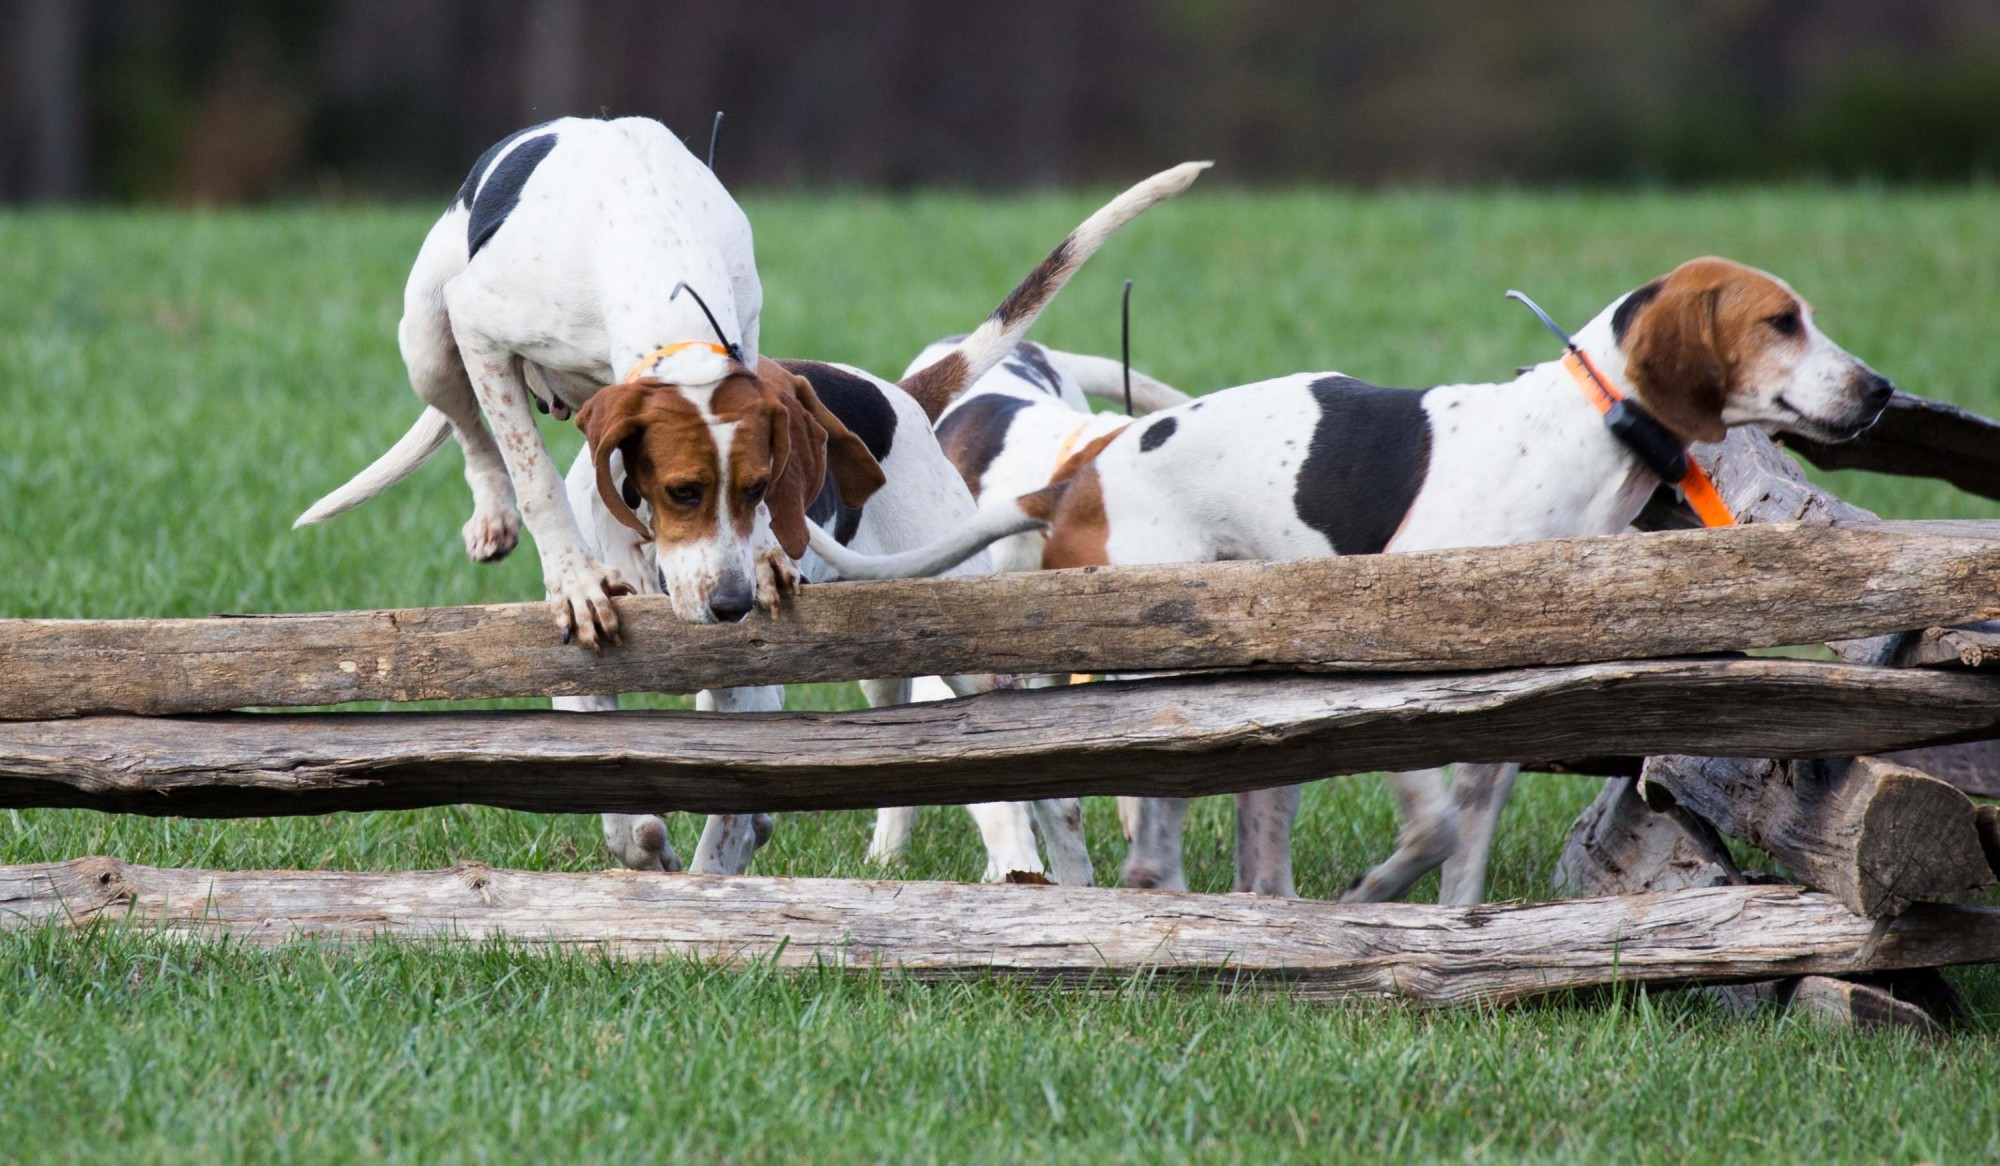 BEAGLES HORSES HOUR OF MEETING DOGS HUNT FOX HUNTING